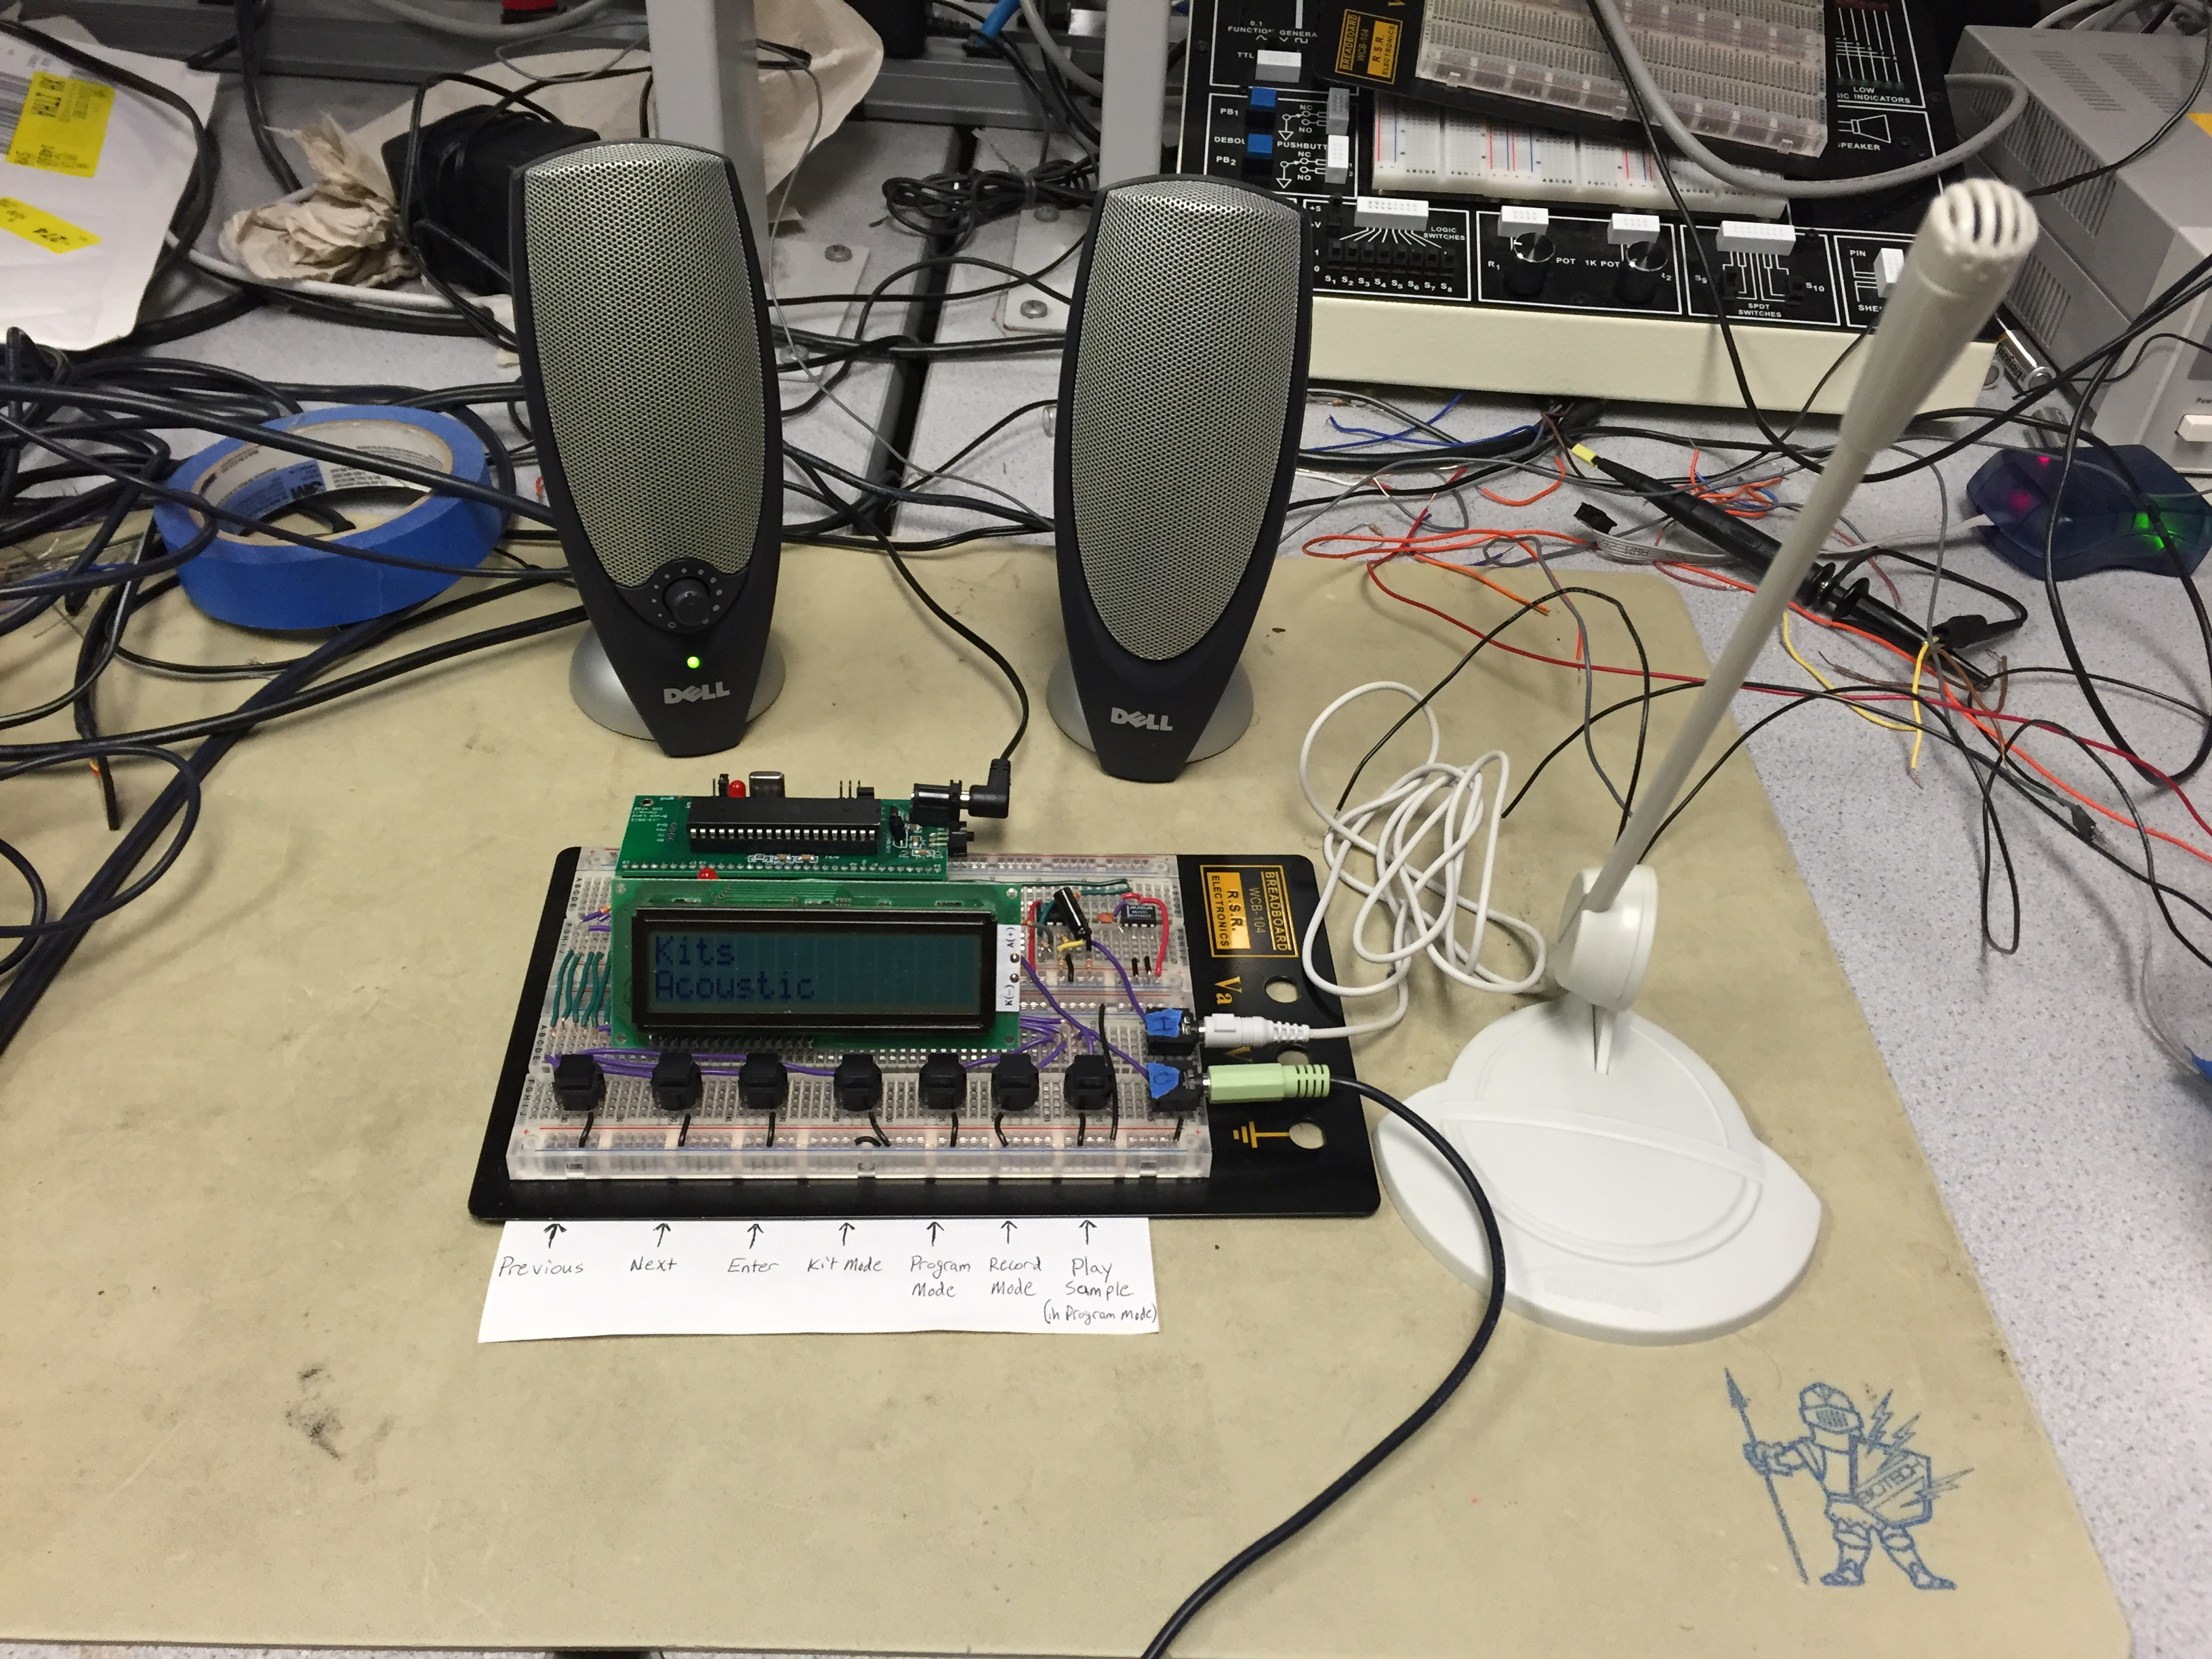 Digitally Recordable User Modifiable Sound Emitting Tool Drum Set Project 61 Breadboarded High Pass Filter There Is An Amplification Circuit And A Low As Seen In The Figure Below We Used Was Max281 5 Pole